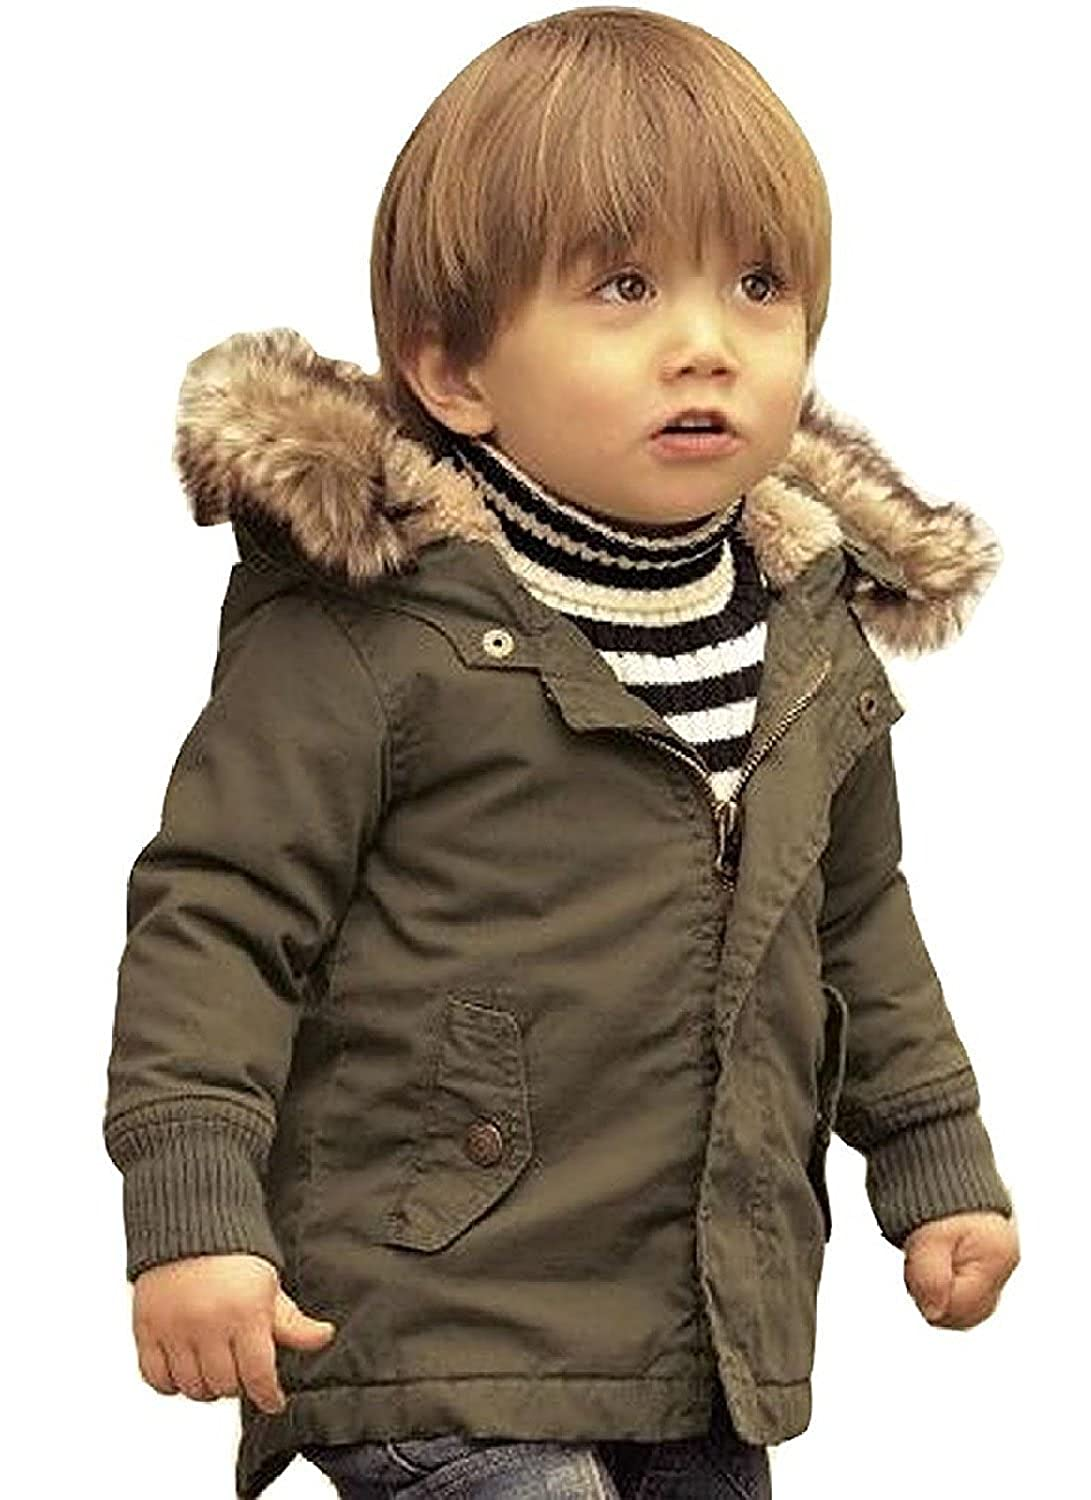 cd9184796cee1 Amazon.com  Baby Boy Hooded Winter Warm Parka Jacket Kids Outerwear Coat   Clothing